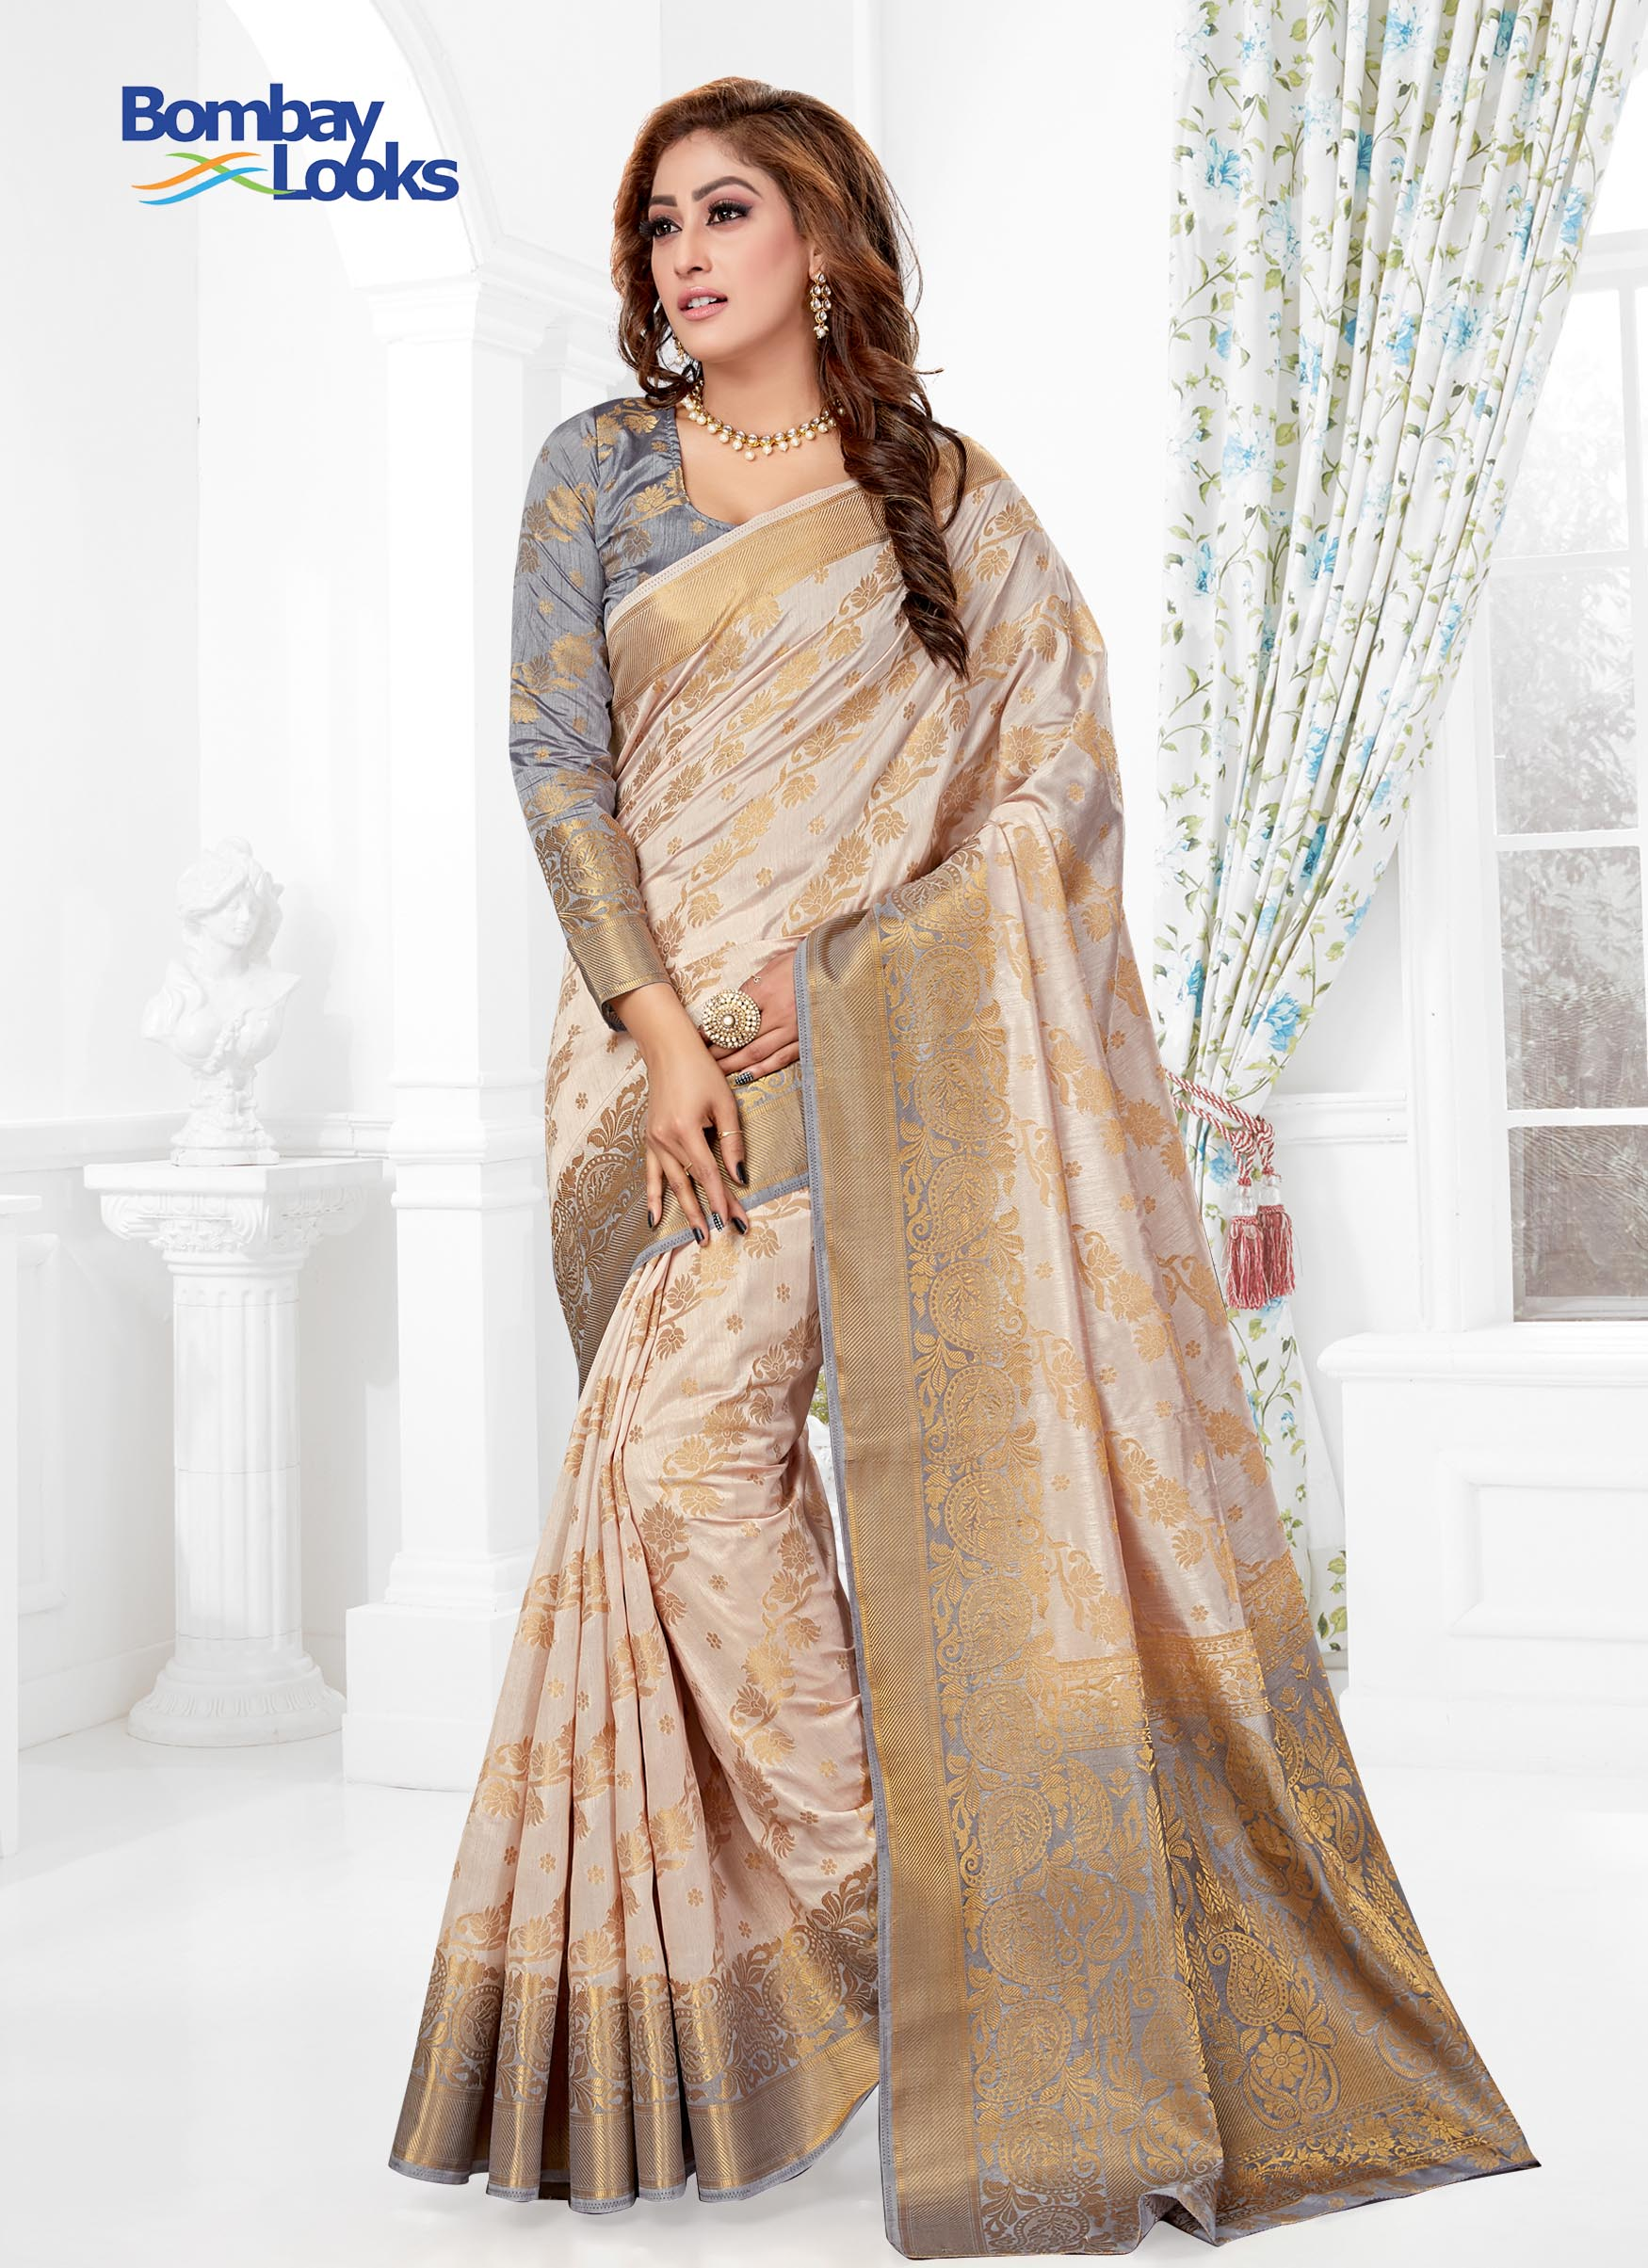 0376e60ed38d46 Indian Sarees | Designer, Silk & Wedding Sarees | Bombay Looks UK